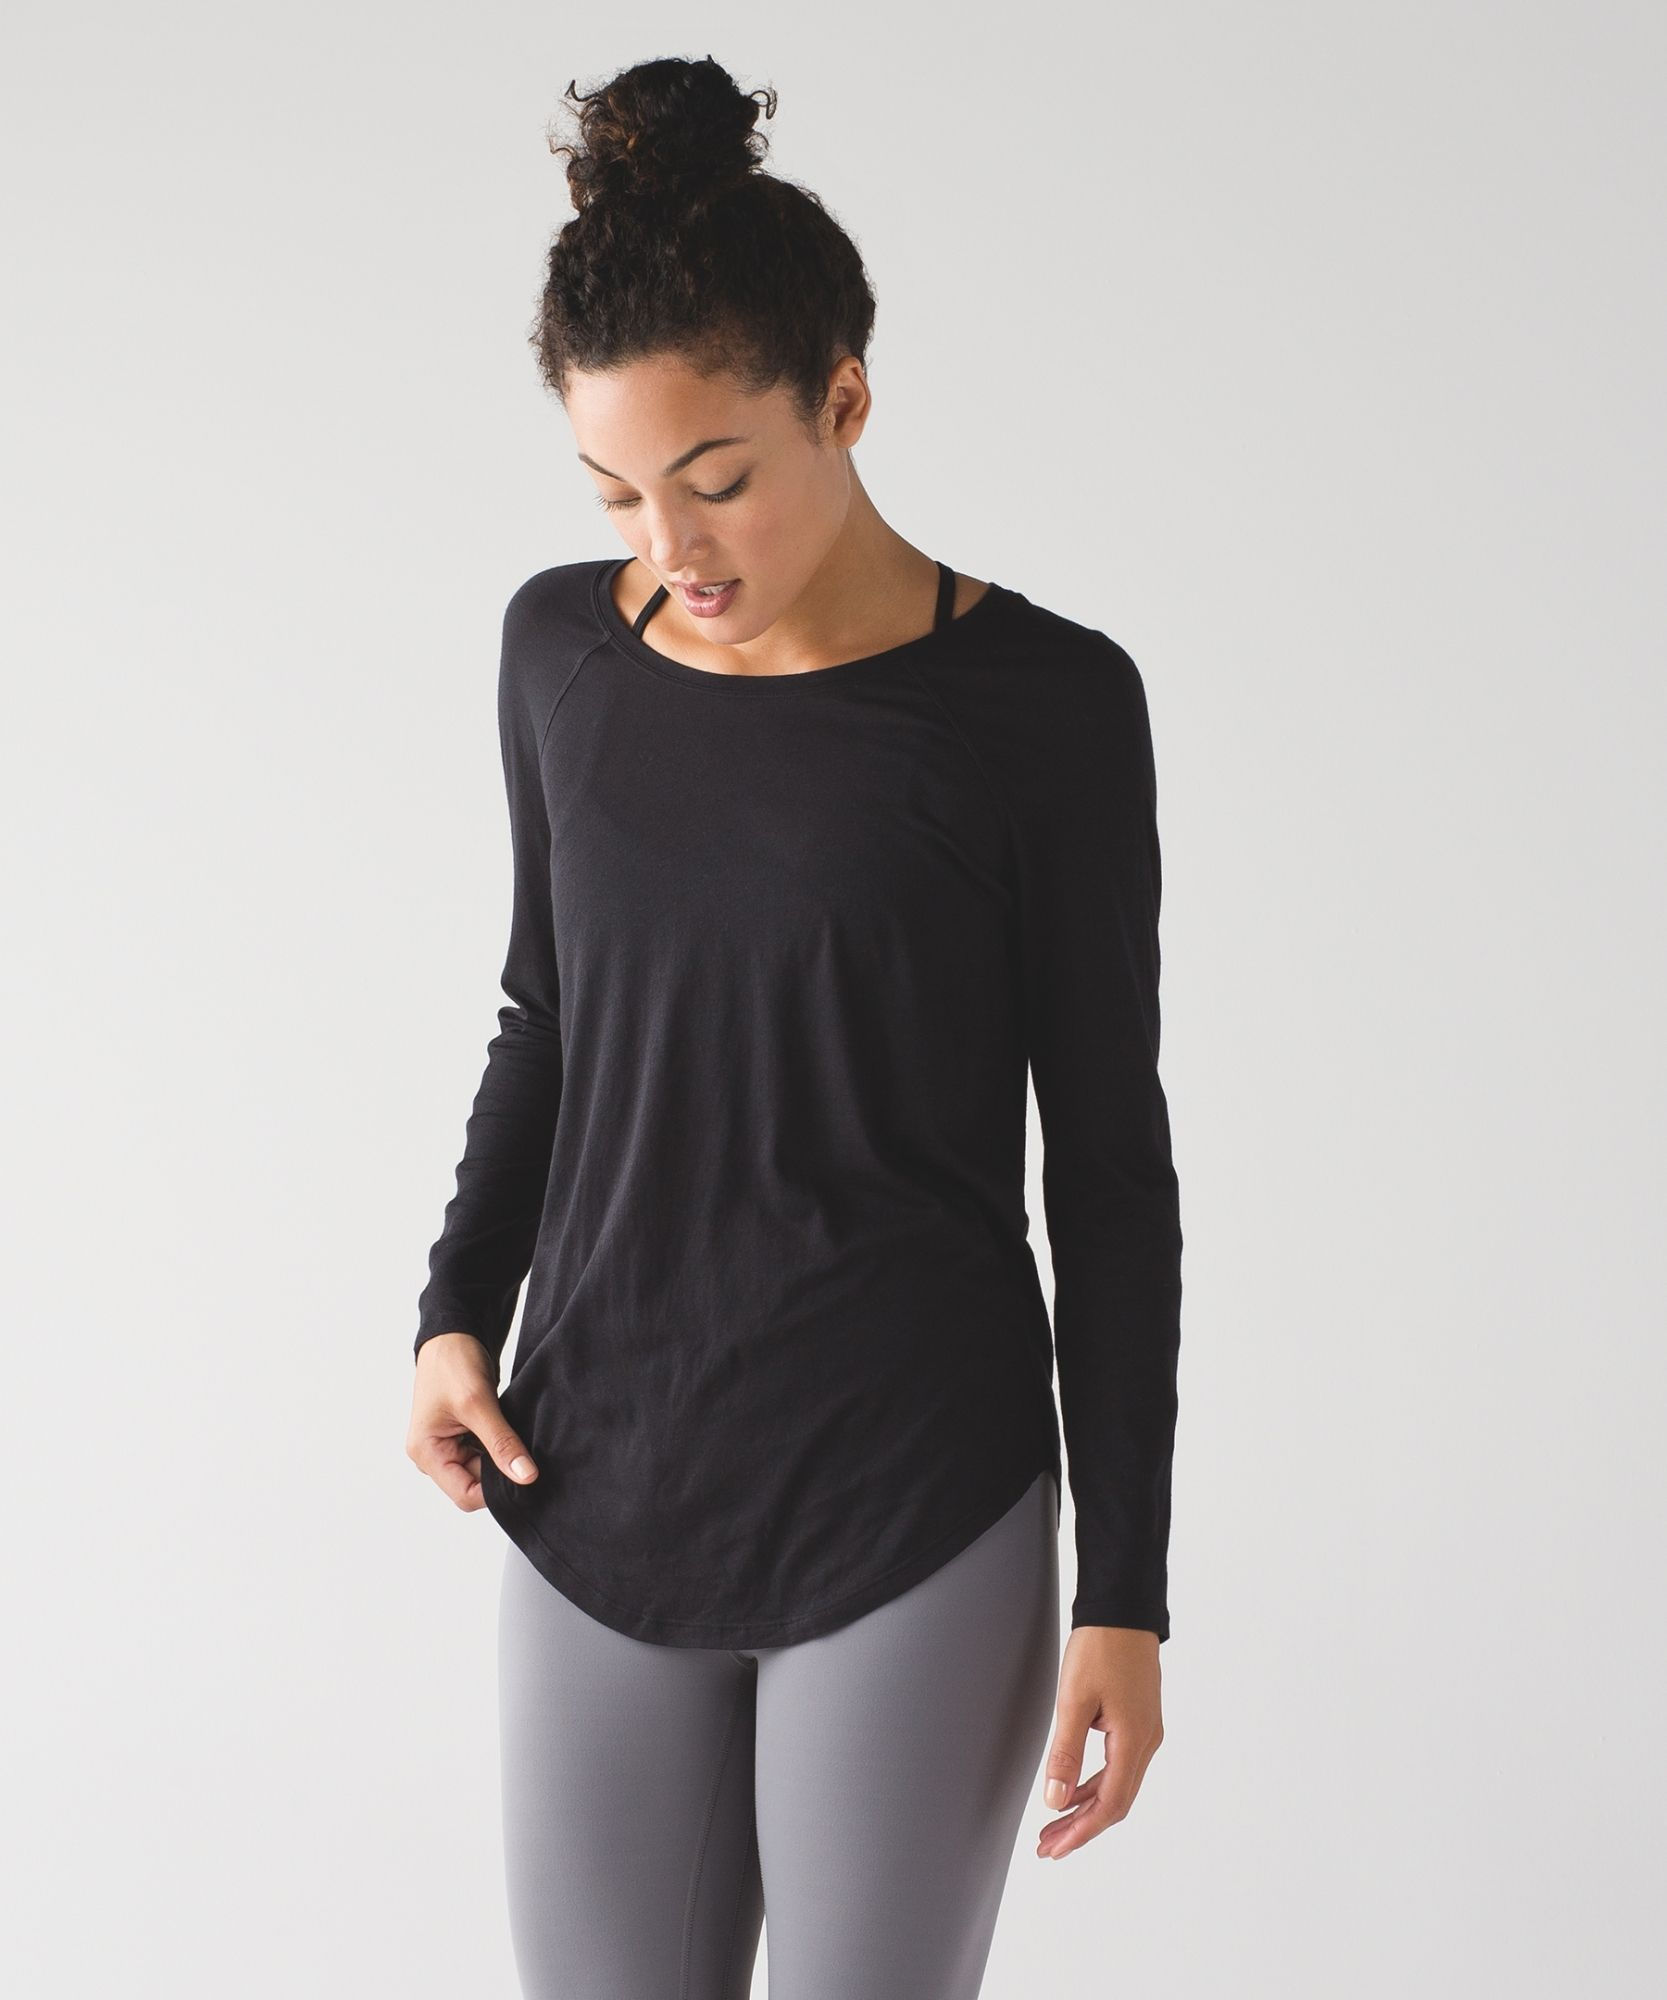 Workout Tops: We Designed This Loose Fit Crew With A Long Length To Give